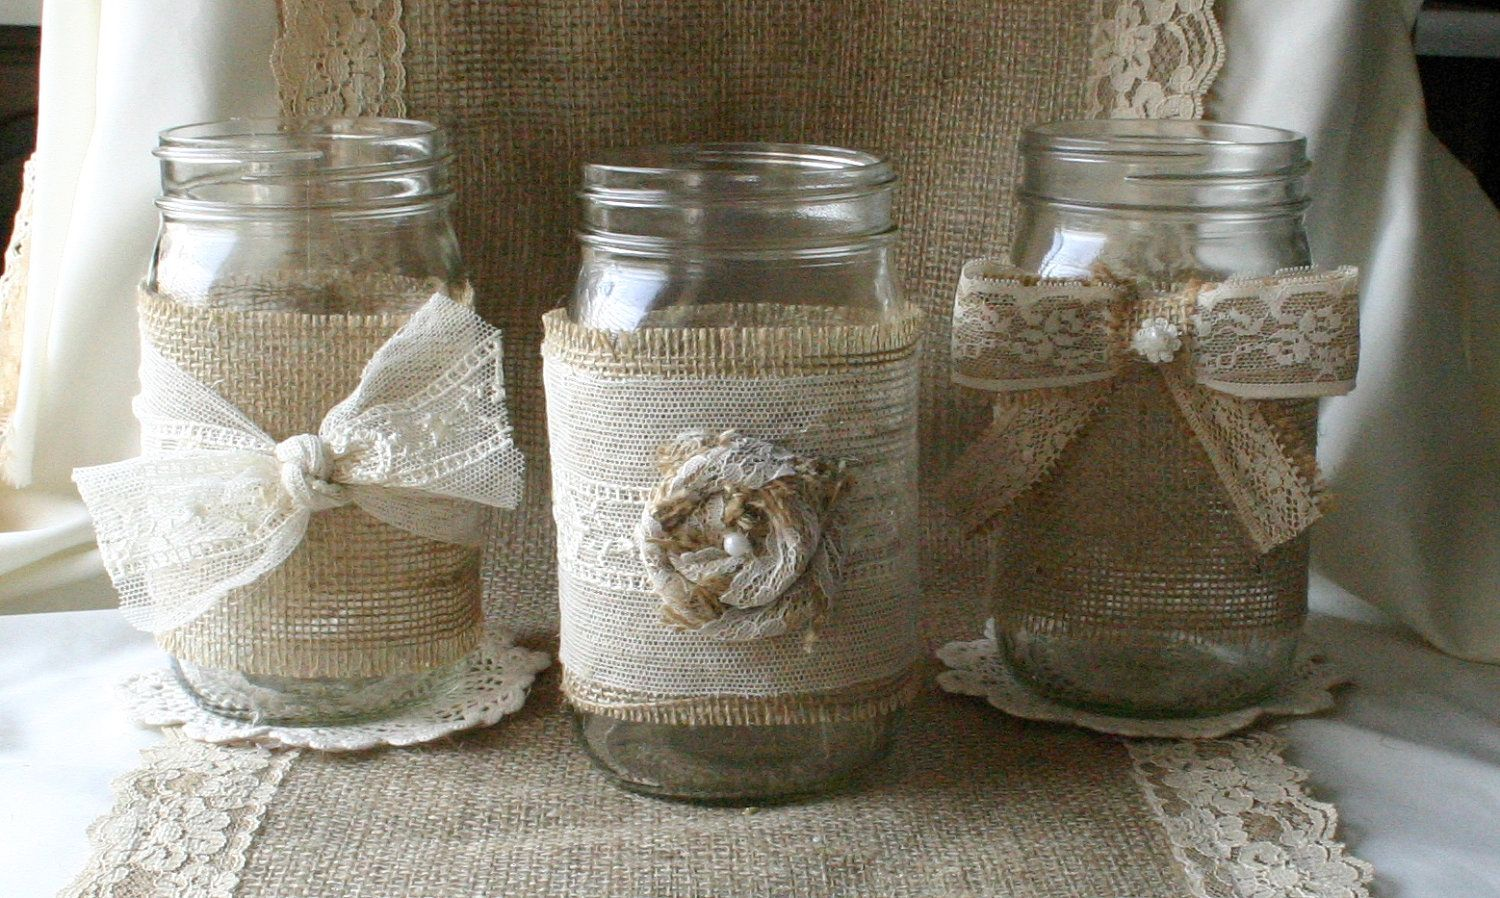 Wedding decoration ideas at home  Chic Rustic Wedding Decoration Ideas   wedding decorations